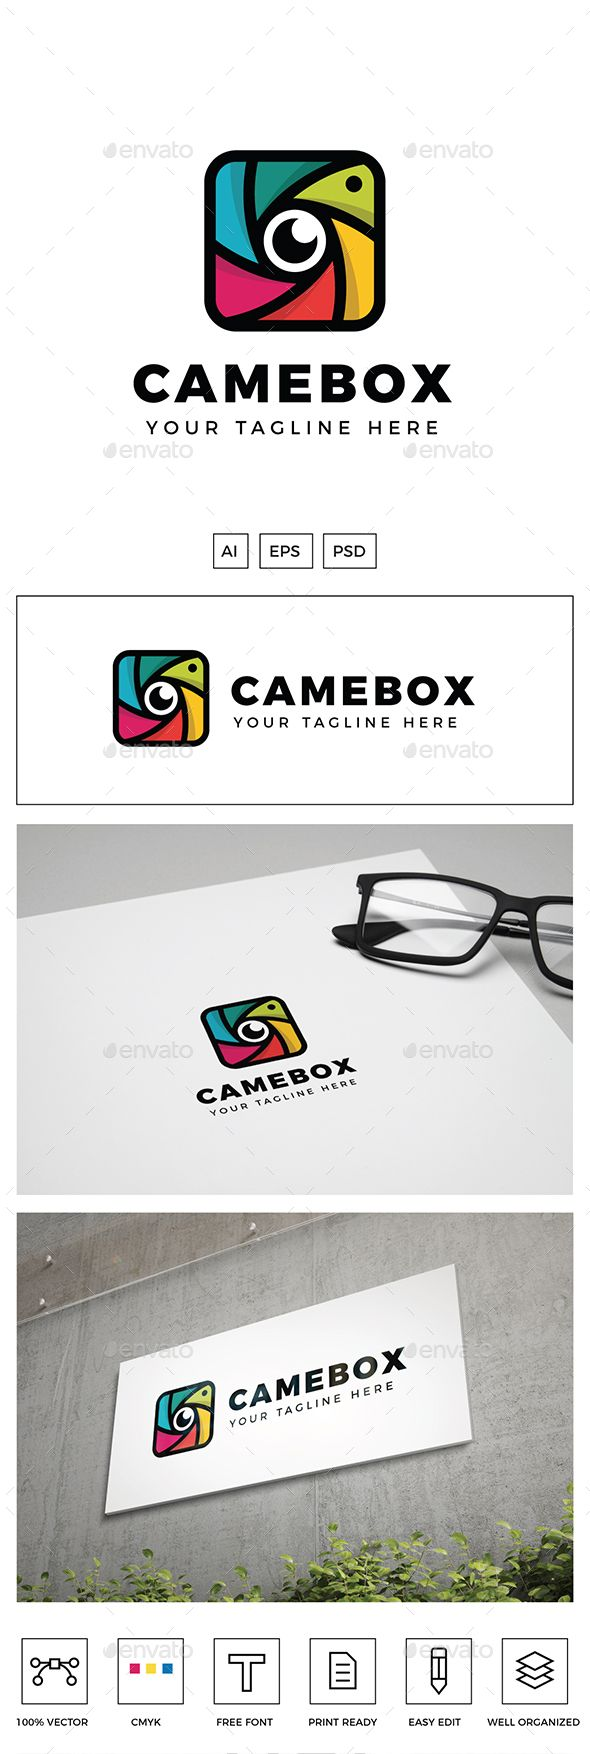 ccamera box logo   is created in adobe illustrator and suitable for camera company tech digital media app software other also rh pinterest